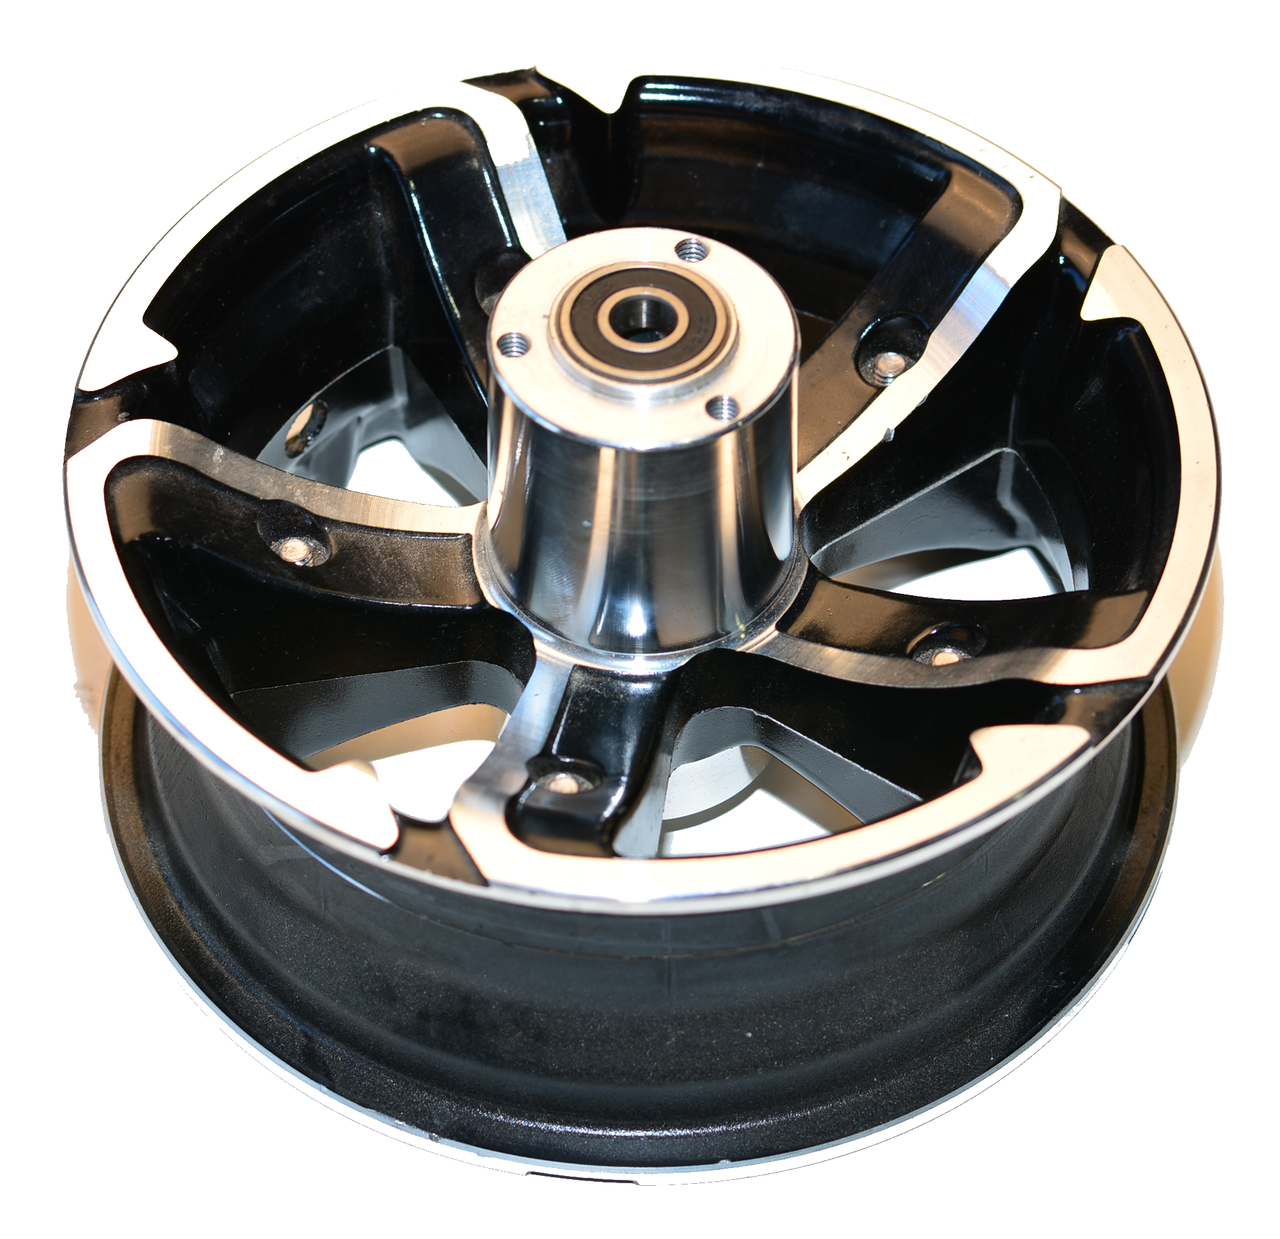 "Factory Front 6.5"" two piece rim (Black) Hyper-Racing Scooter"